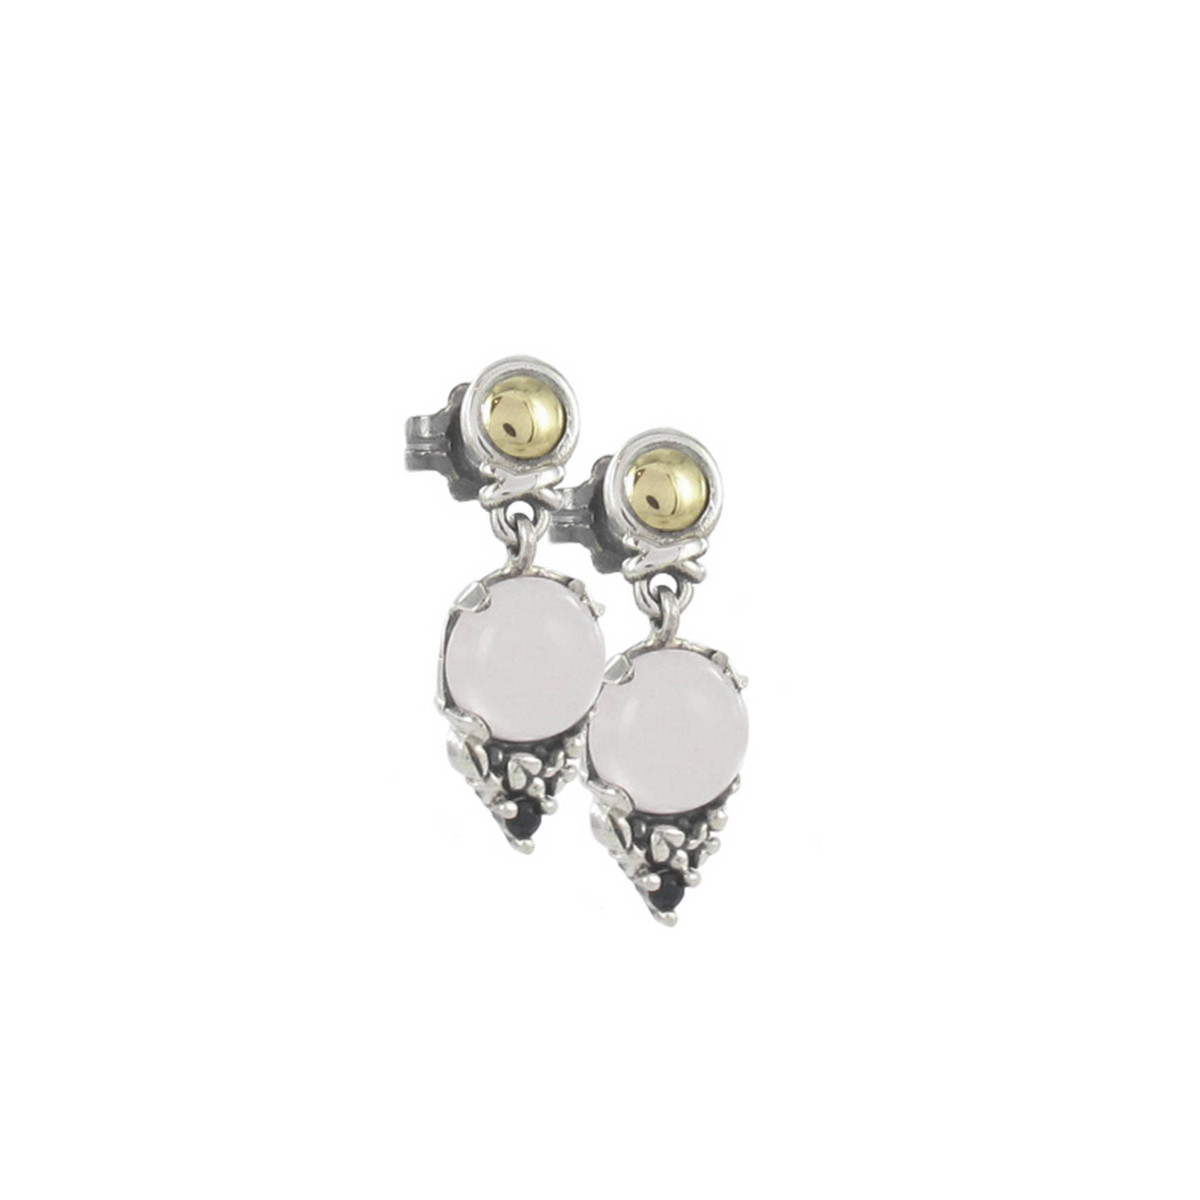 SILVER AND GOLD EARRINGS WITH NATURAL STONES